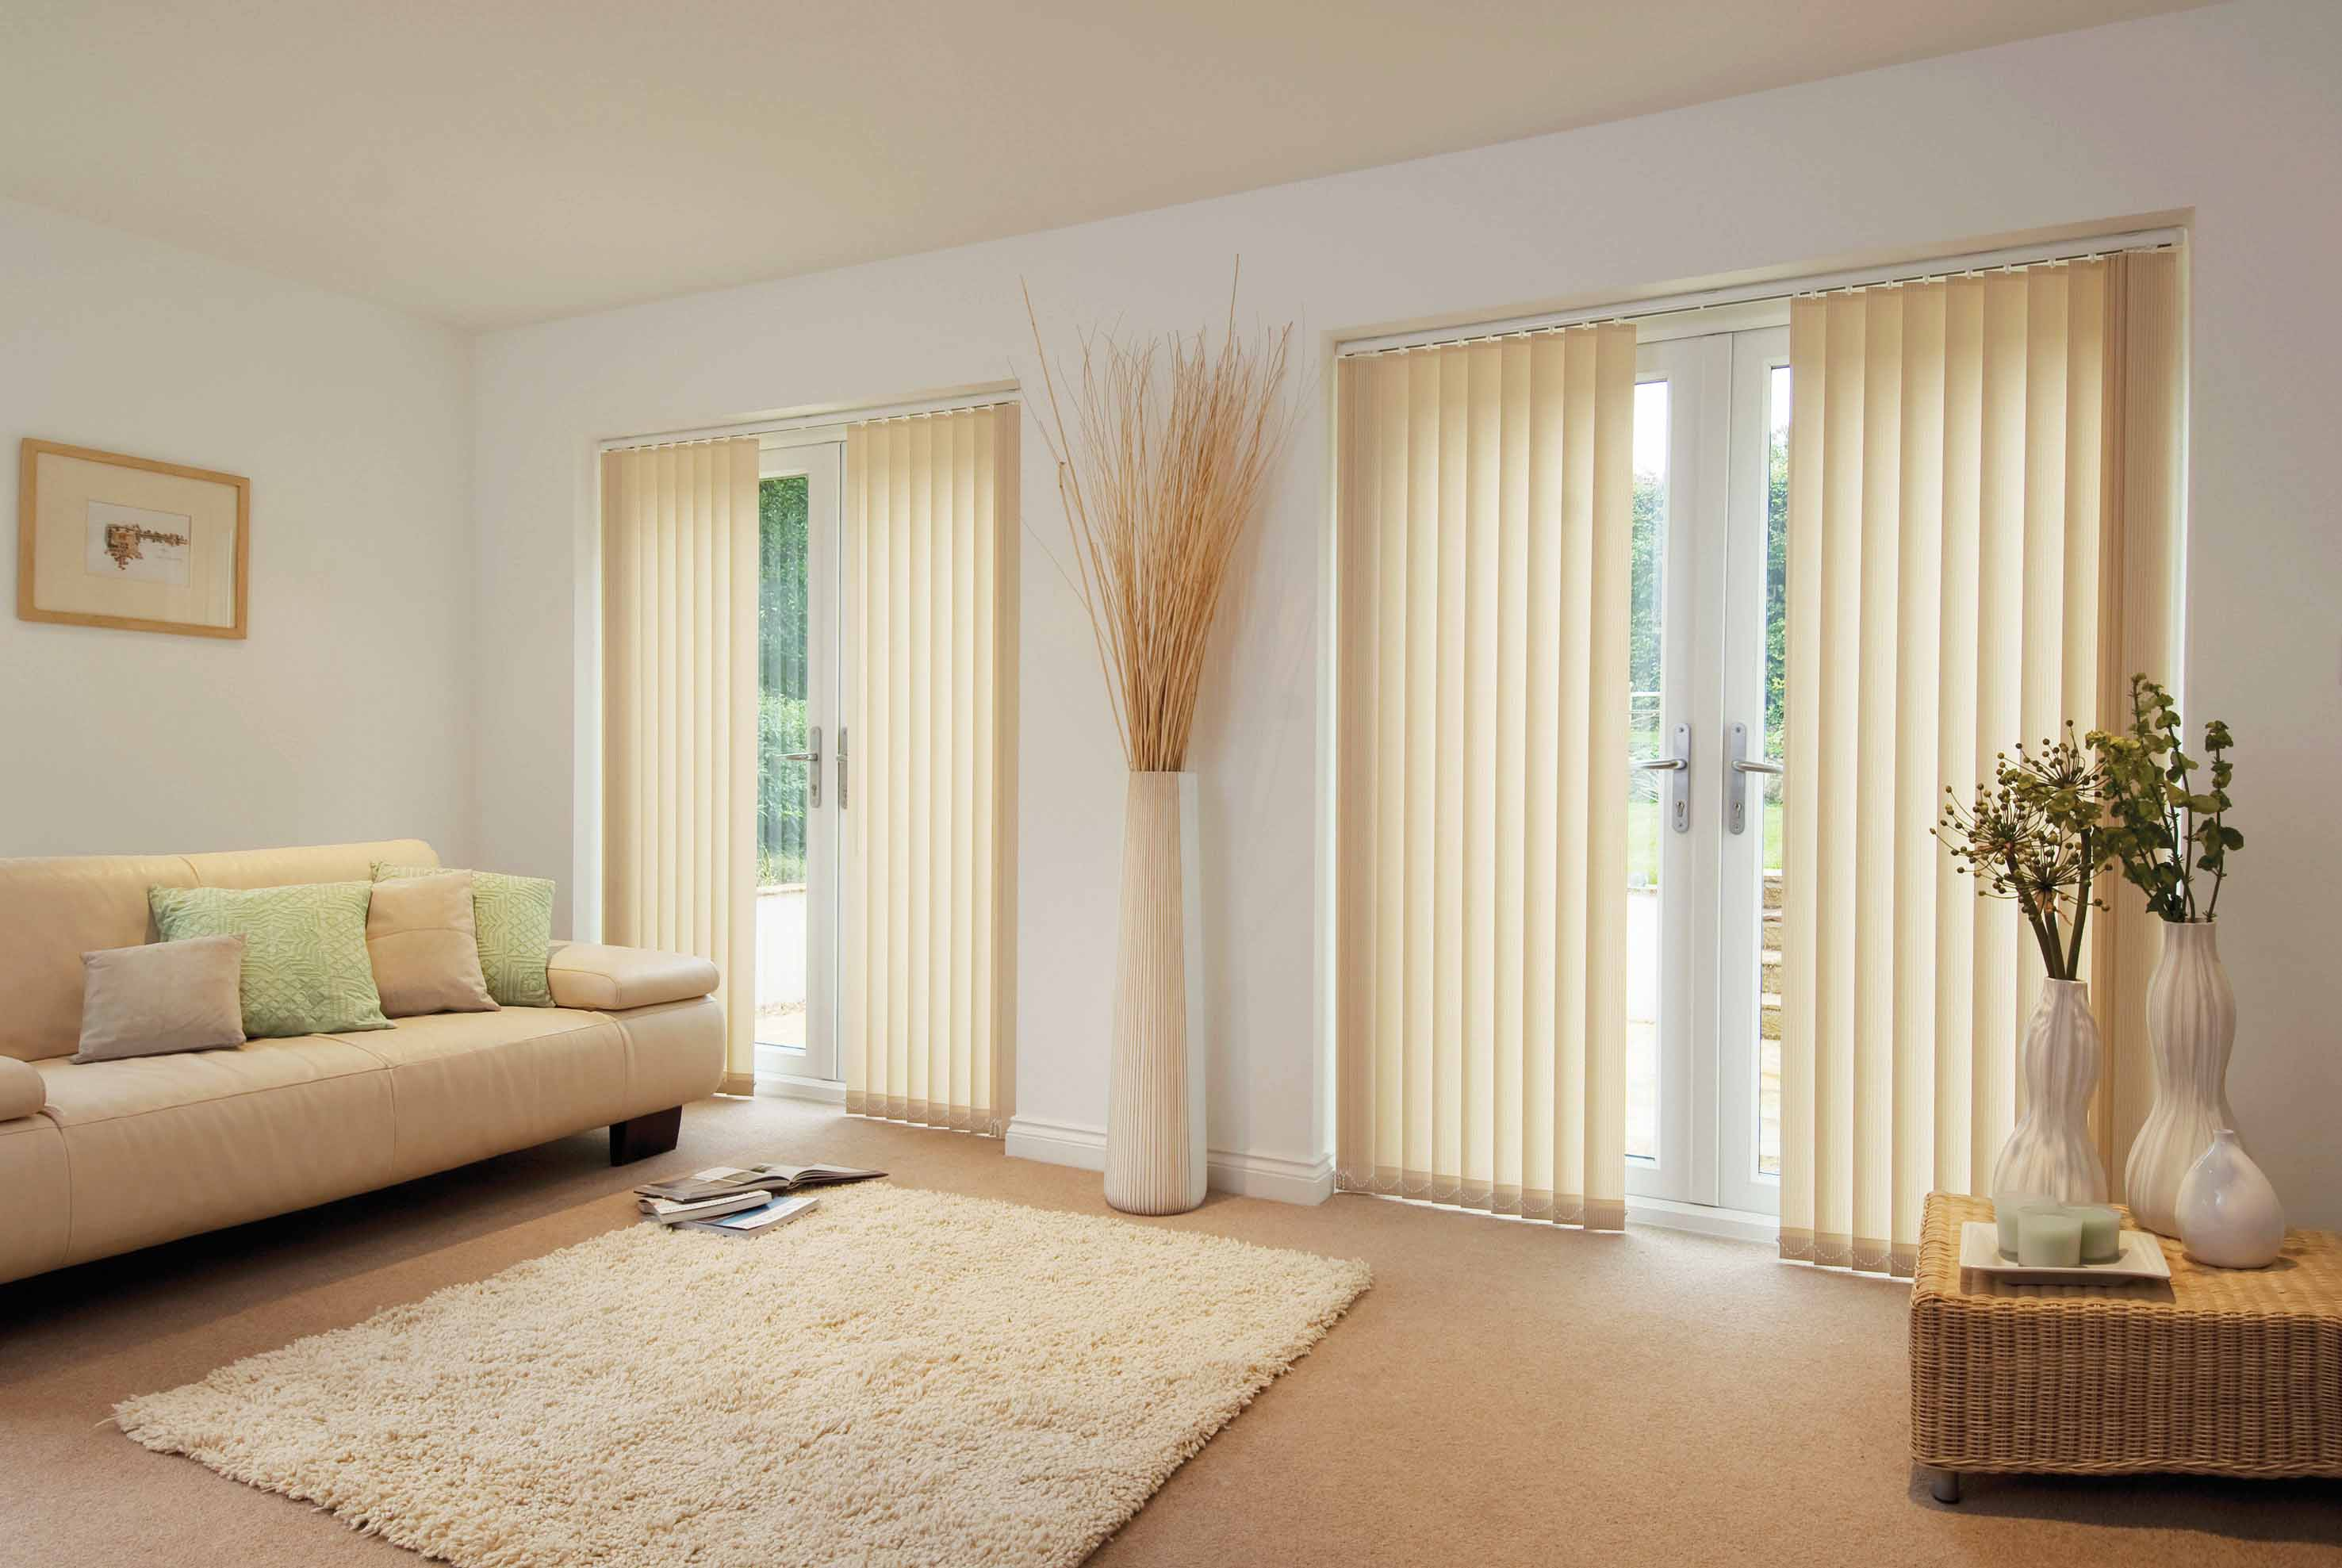 Vertical blinds for sliding glass doors window treatment ideas hgnv view in gallery curtain rods for sliding glass doors with vertical blinds eventelaan Gallery